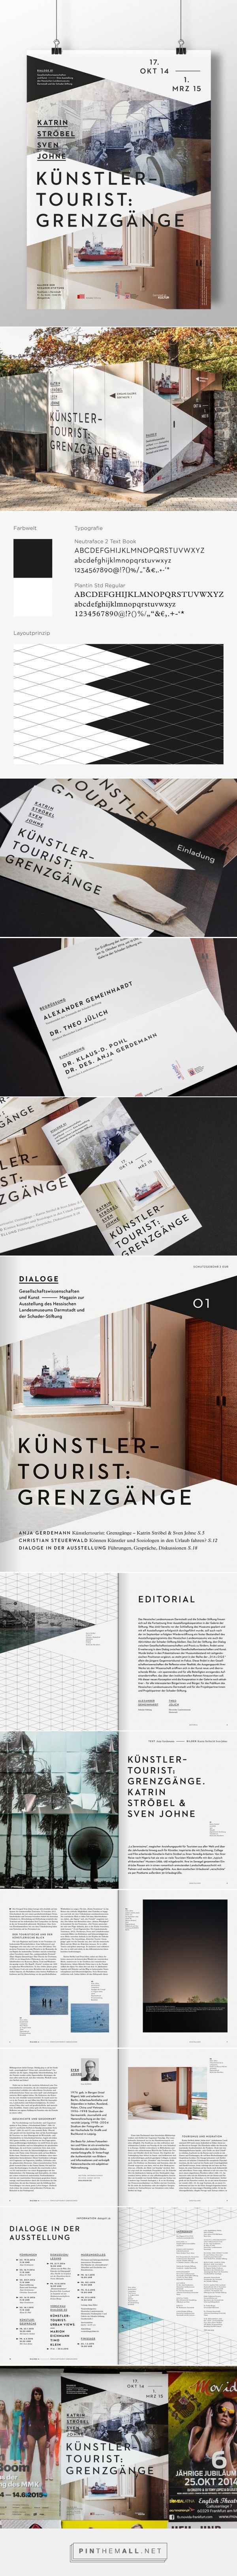 Corporate Design: Schader-Stiftung The exhibition series Dialogues is a cooperation of the Hessian State Museum Darmstadt and Schader Foundation. Current theme of communication 01 is an artistic approaches to tourist travel, the work of contemporary artists Katrin Stroebel and Sven Johne shows in the gallery of Schader Foundation. With our new corporate design for the cooperation we bear within the meaning of Schader Foundation for dialogue between social sciences and the arts.